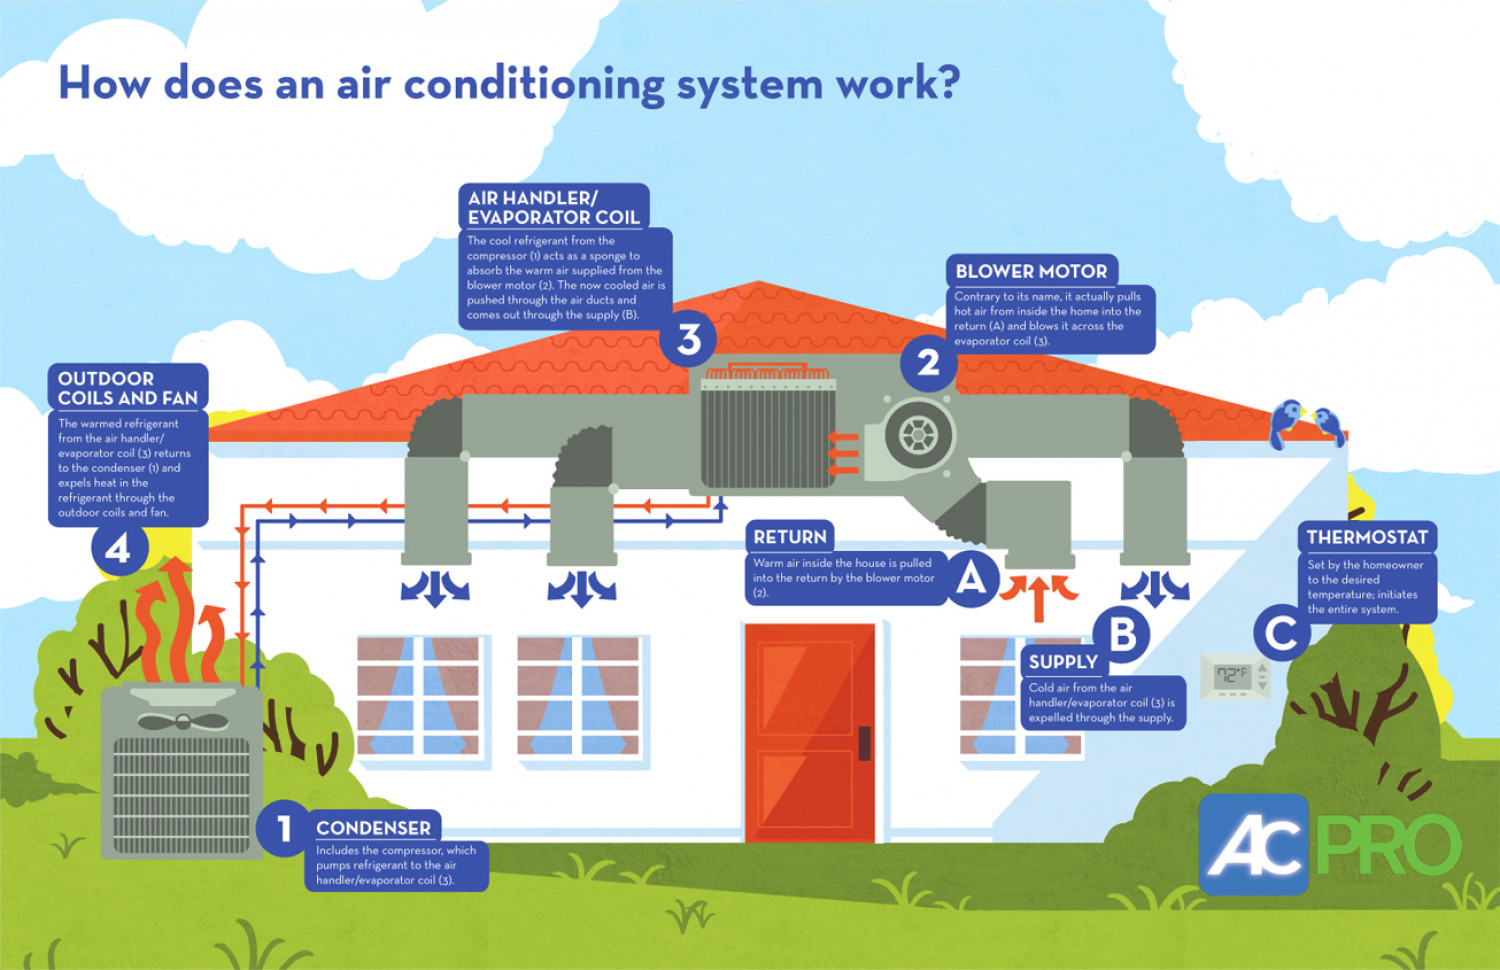 How Does an Air Conditioning System Work? Infographic